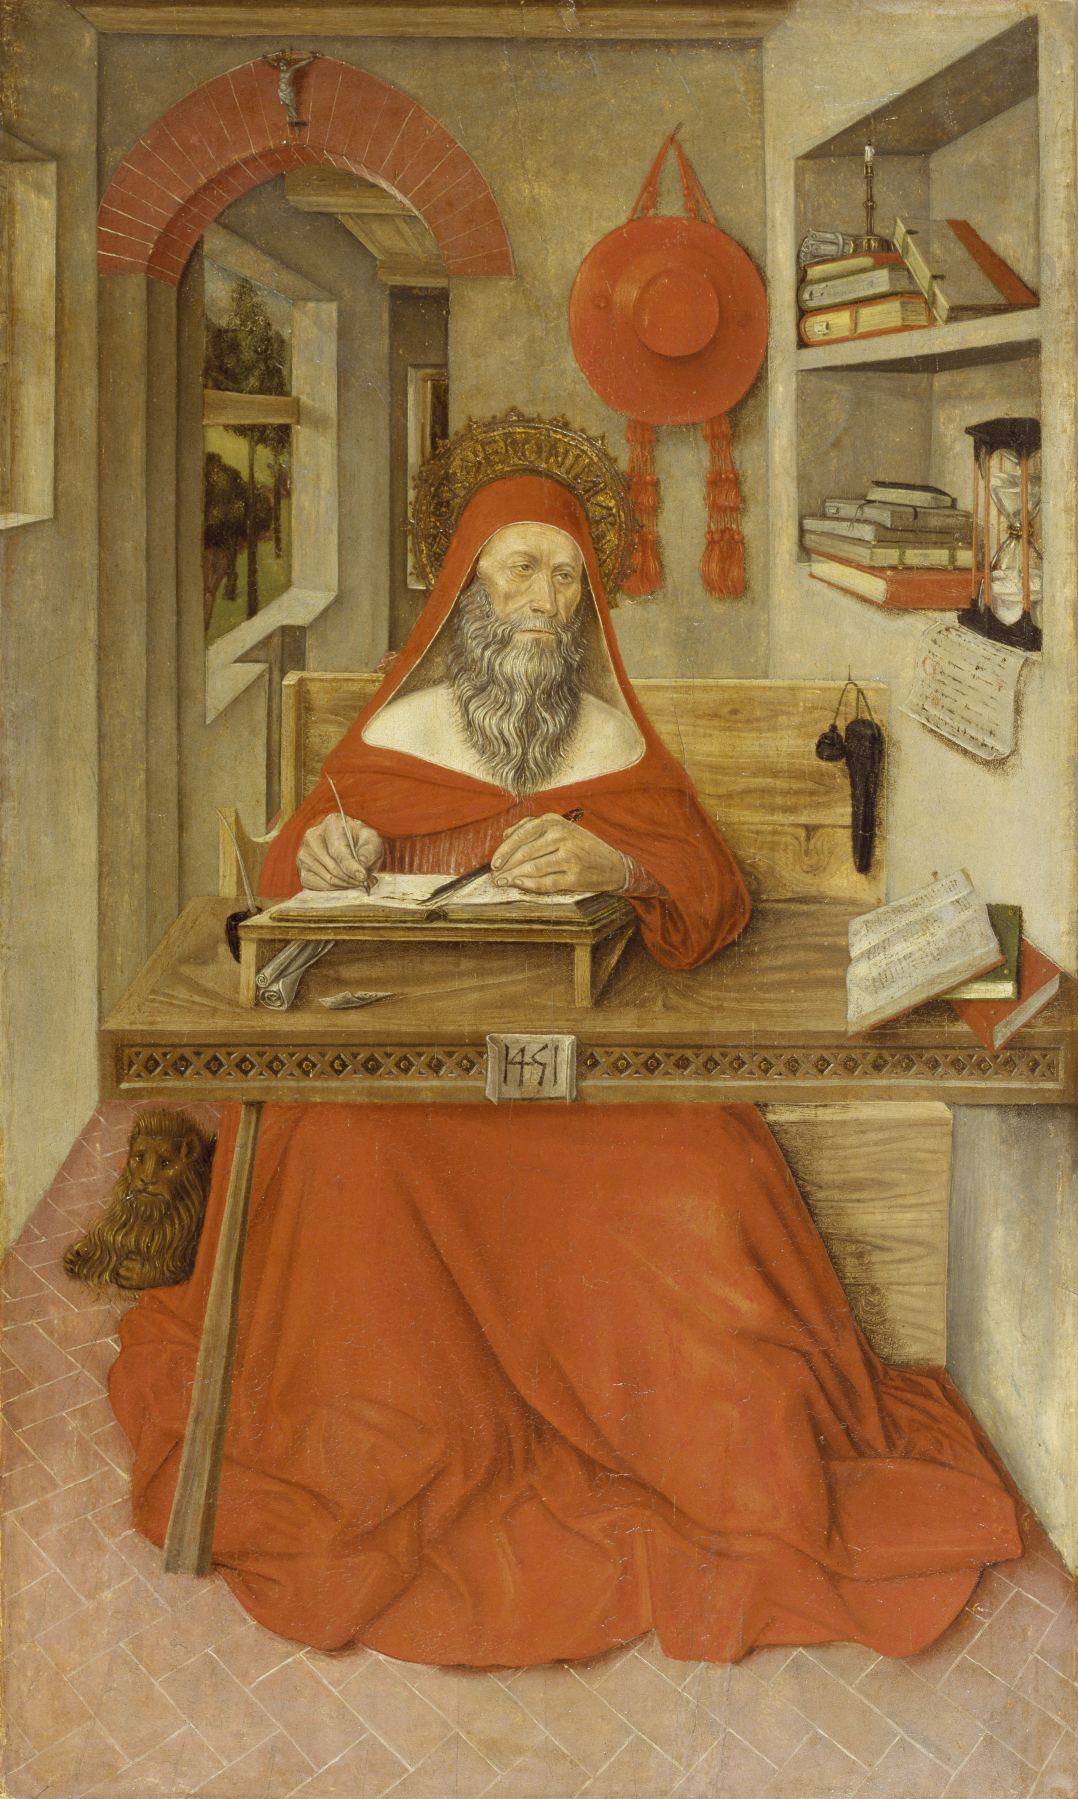 Antonio_da_Fabriano_II_-_Saint_Jerome_in_His_Study_-_Walters_37439 (1)